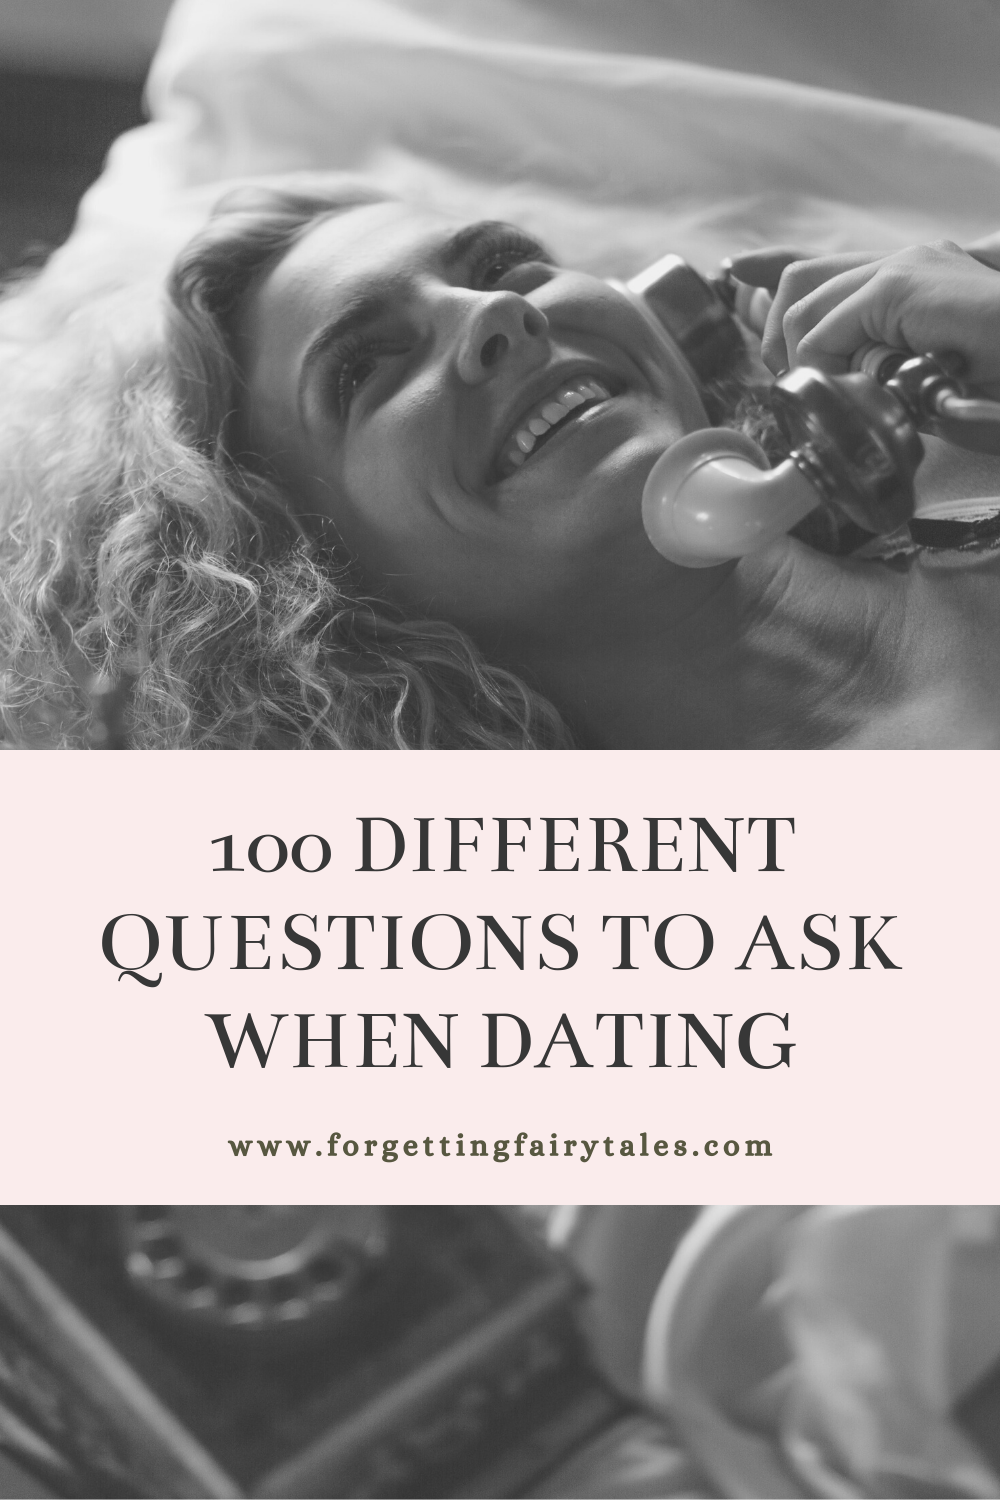 Different Questions to Ask When Dating